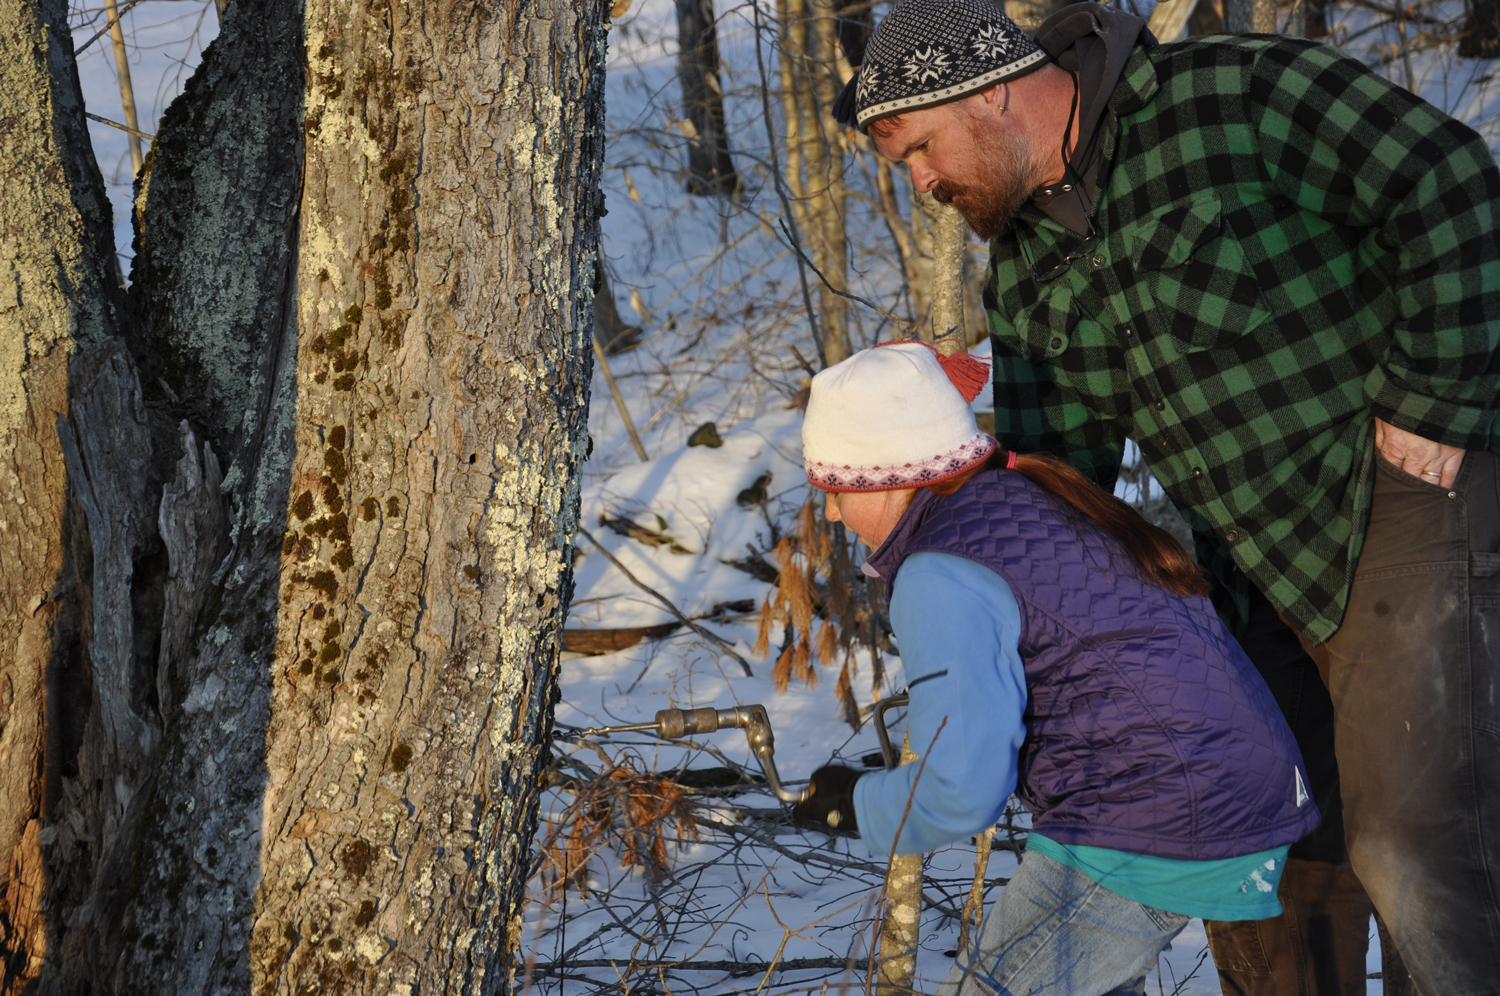 Maine windjammers tapping maple trees